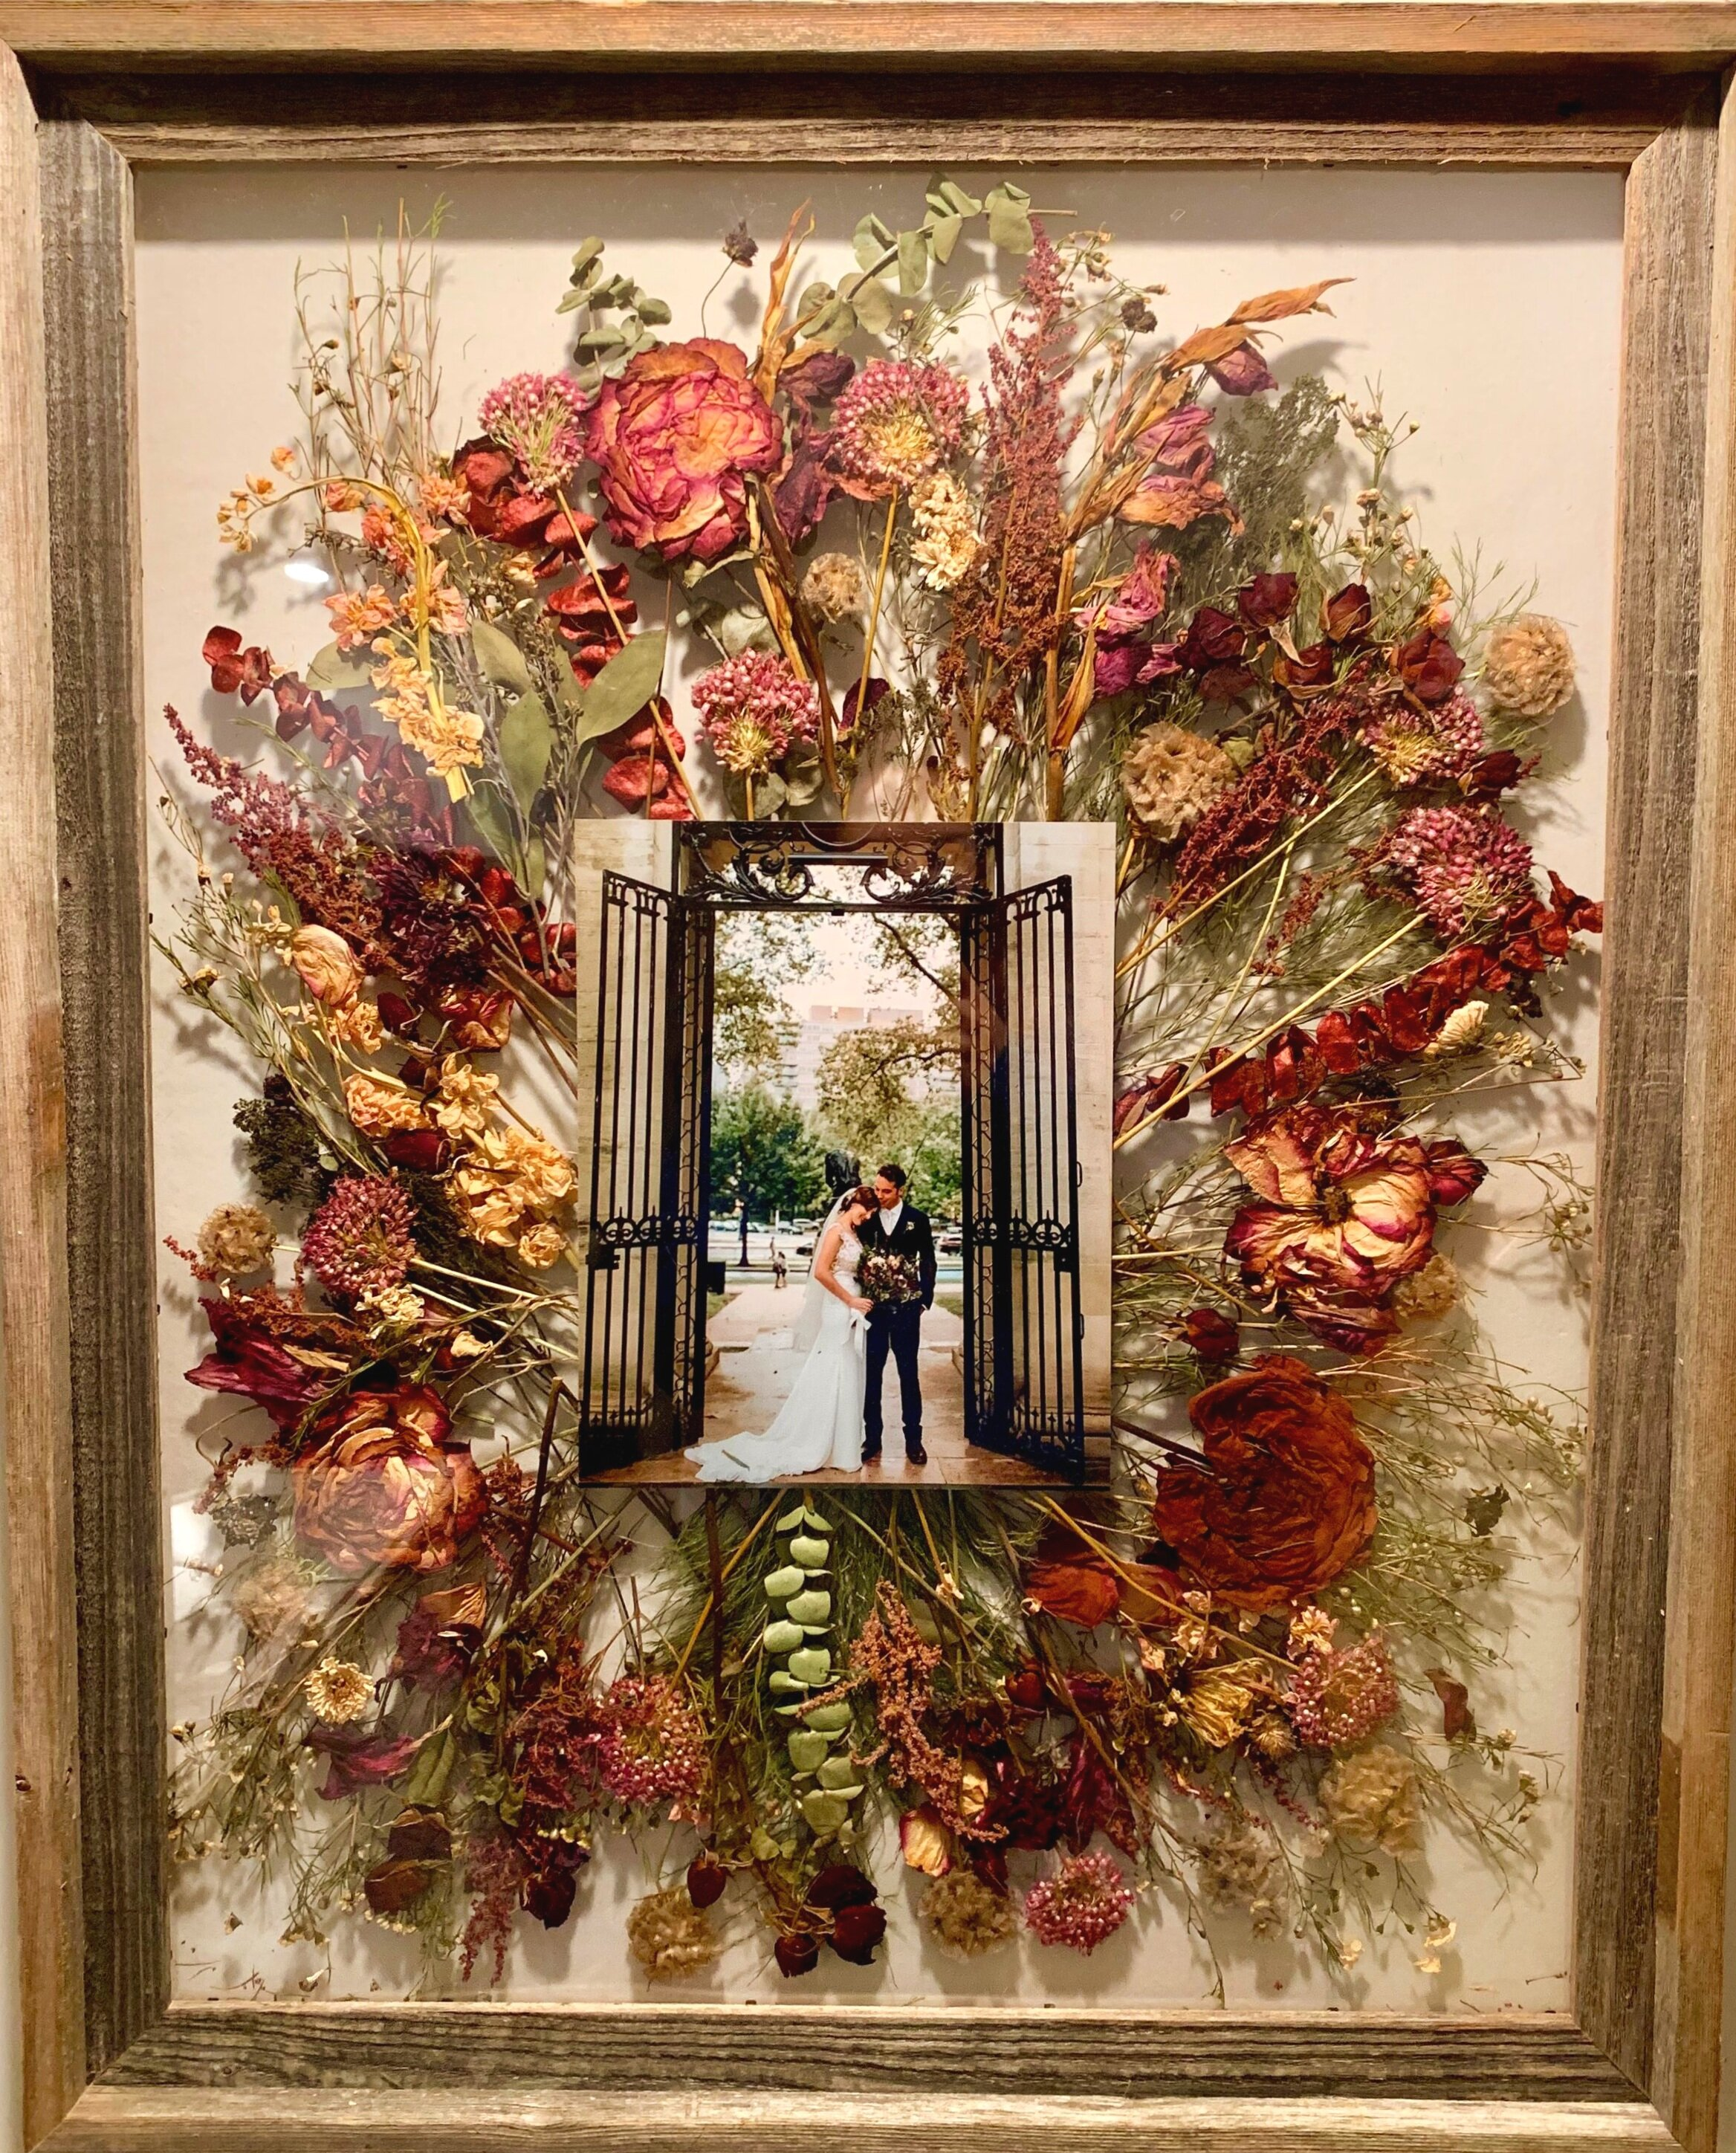 "Pressed bouquet from wedding. 24""x 28"" reclaimed barn wood frame with 8 x 10 print of bride and groom on the wedding day. Brides can deliver bouquets, invitations, photos, swatches of dress fabric, etc to be preserved in a pressed frame. See  Contact Page  to inquire about preserving flowers from weddings, proms, recitals, engagements, funerals, etc."